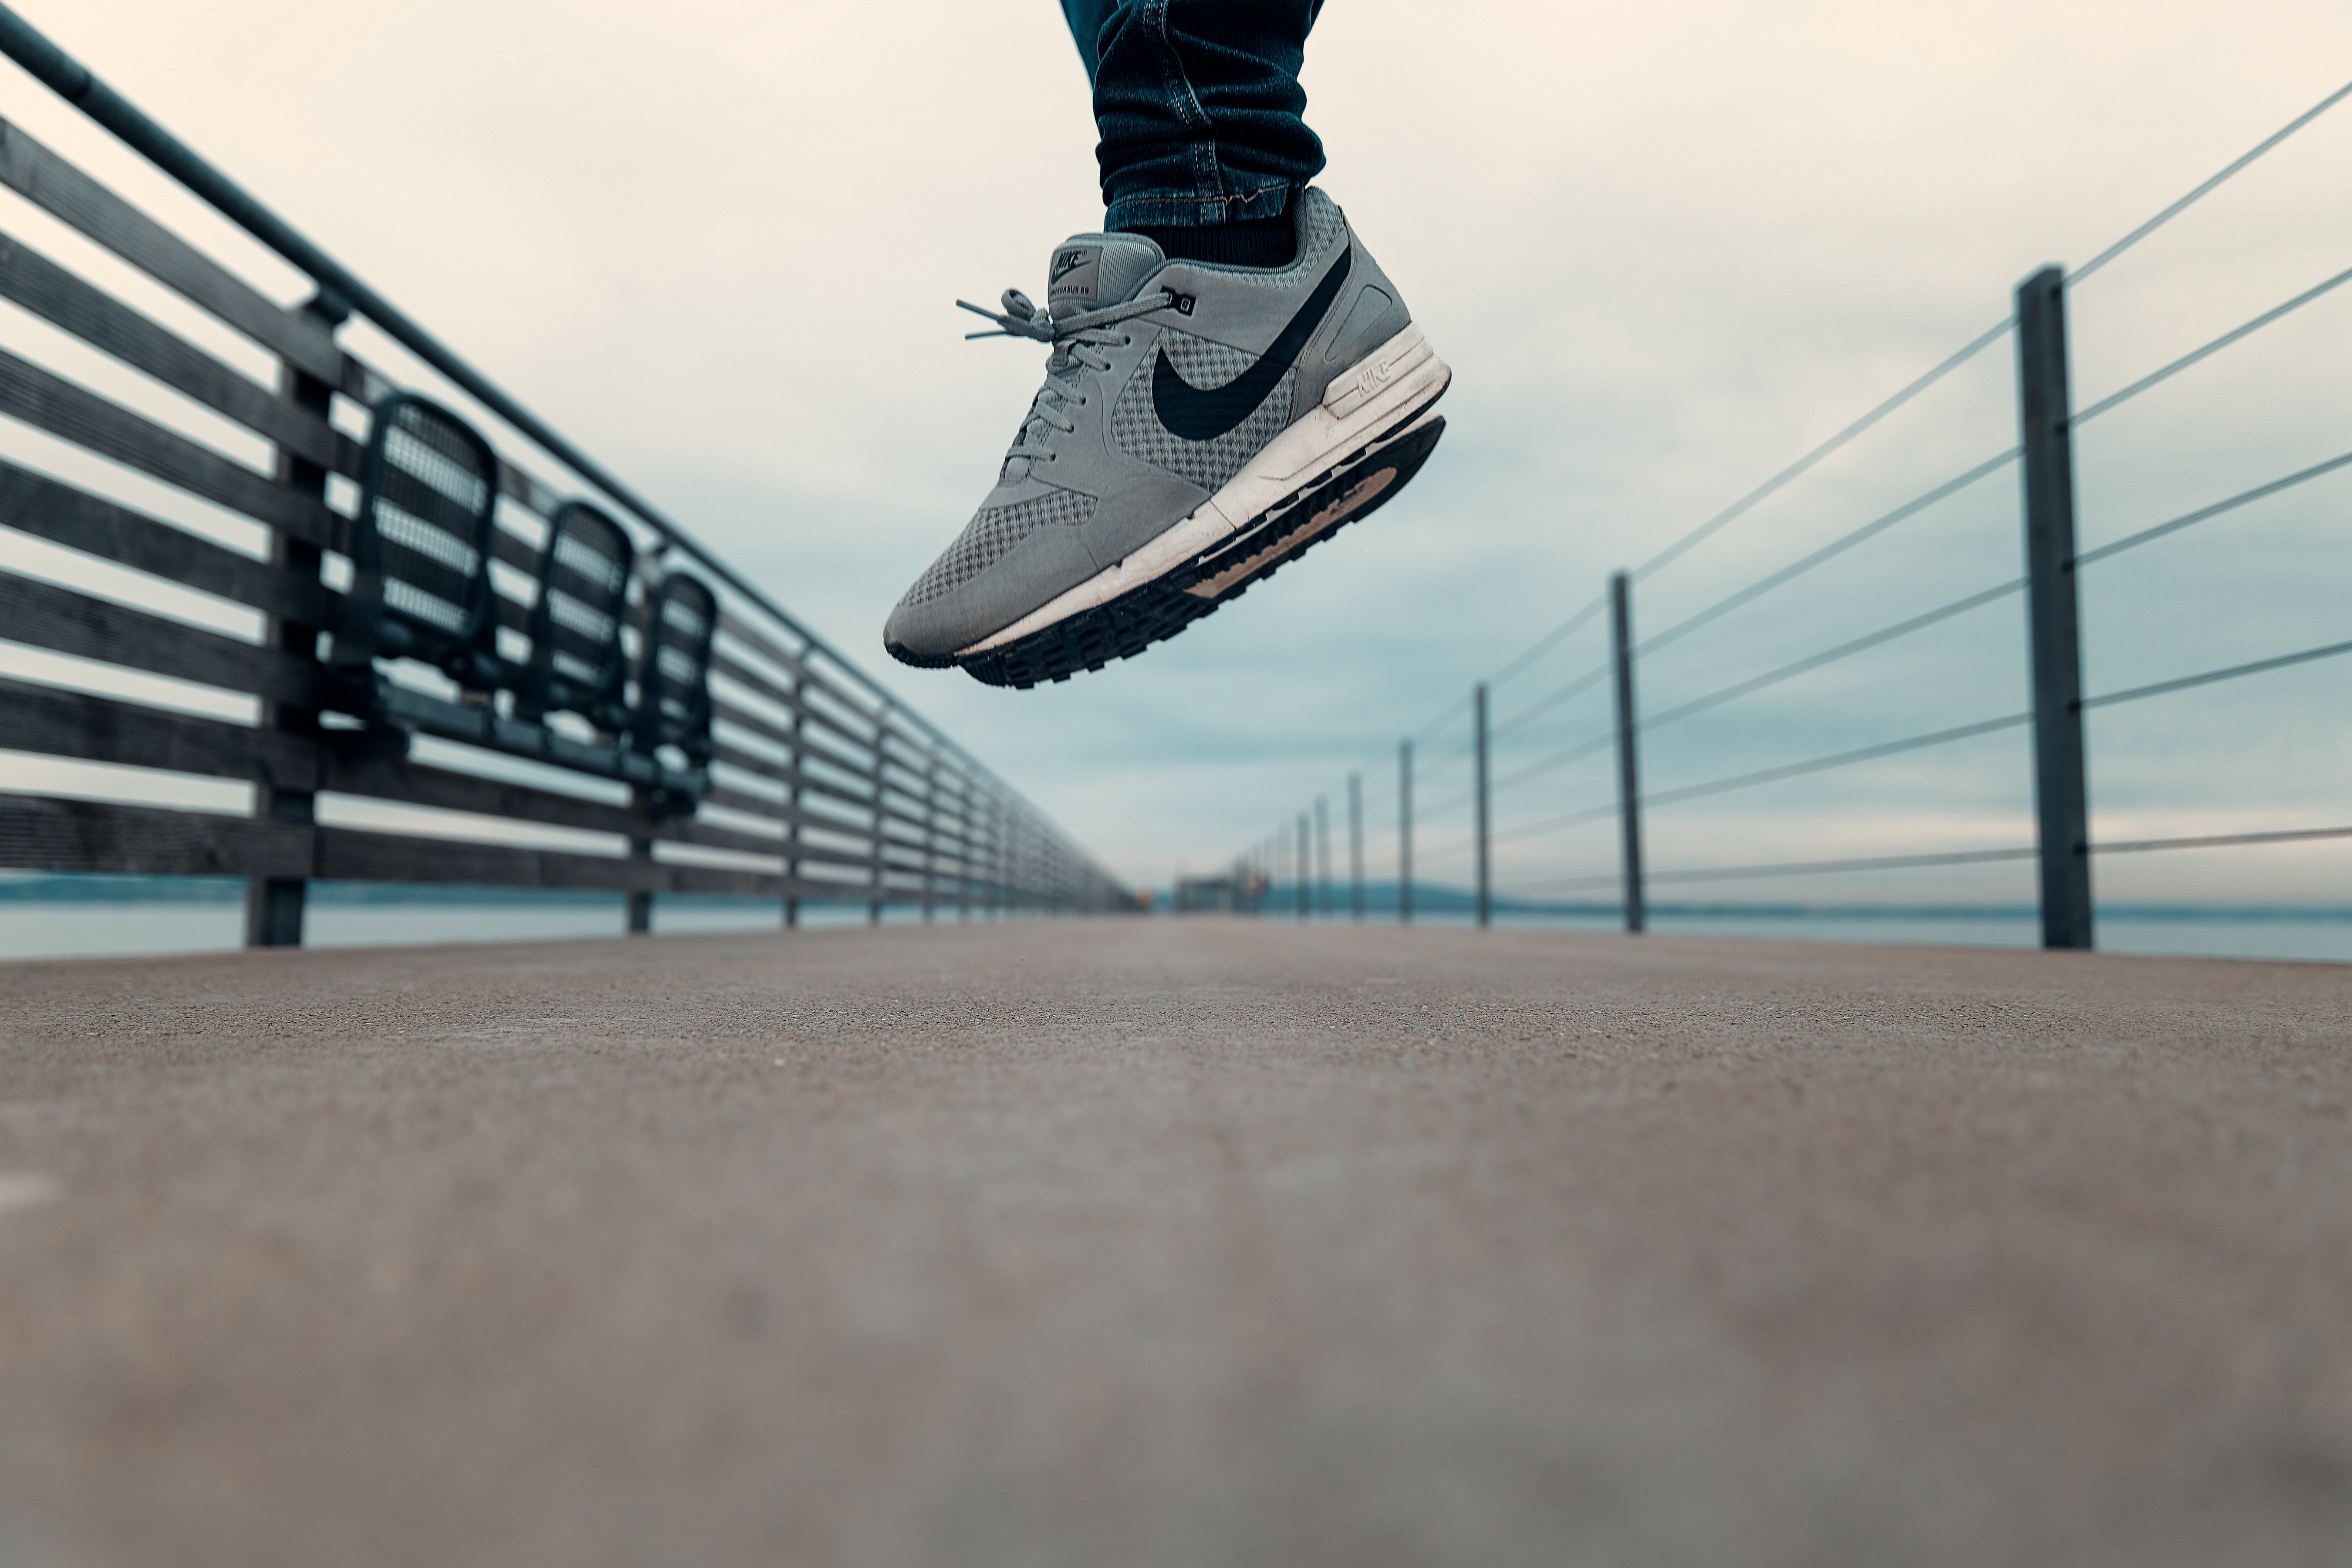 Jumping,concrete,nike,action